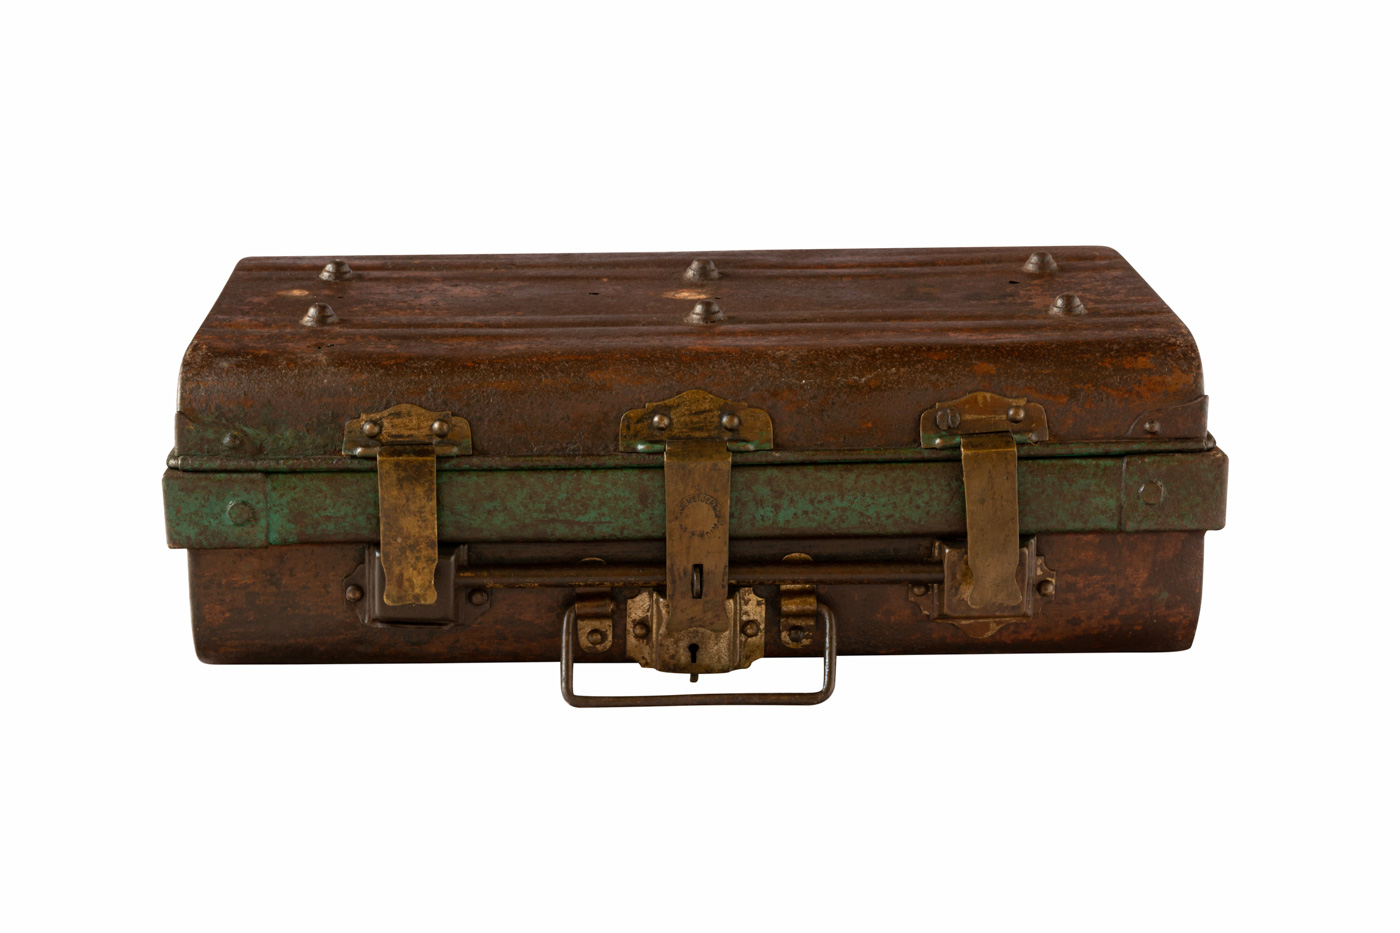 Antique Vietnam antique suitcase in metal, aged green